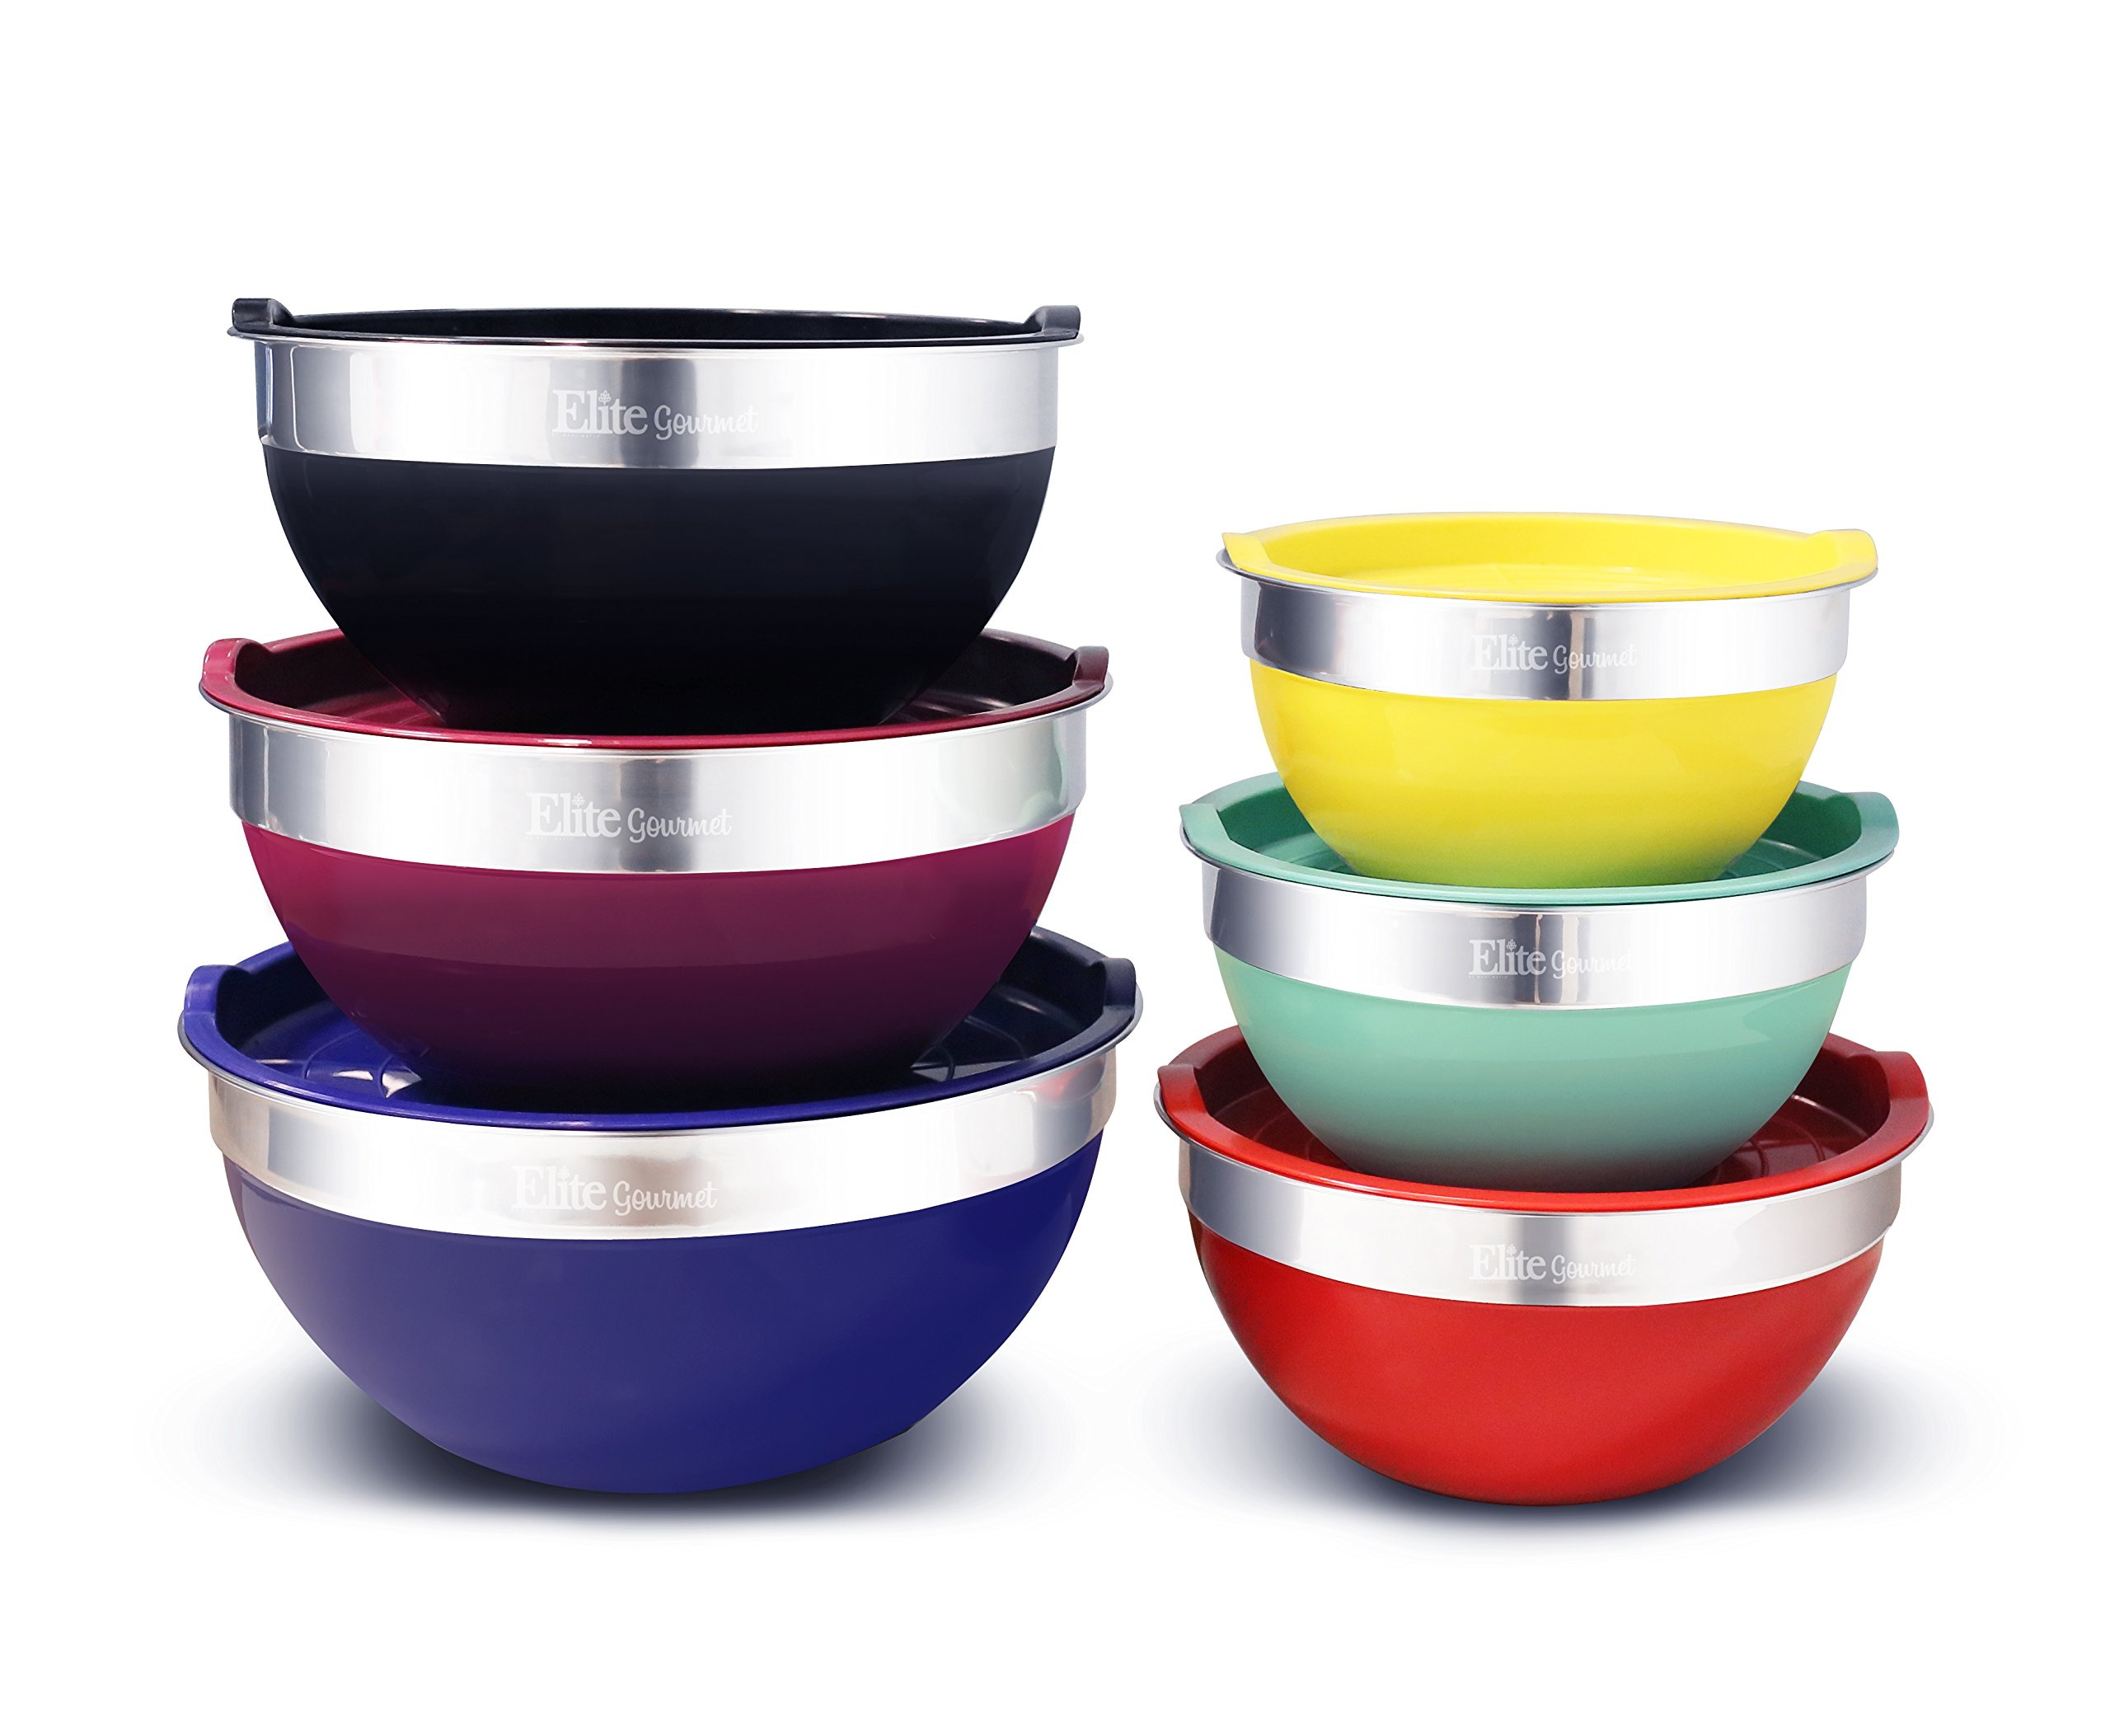 Elite Gourmet EBS-0012 Maxi-Matic 12-Piece Stainless Steel Colored Mixing Bowls with Lids, 7.25 Qt. - 6 Qt. – 3.5 Qt. – 3 Qt. – 2.25 Qt. – 2 Qt. by Maxi-Matic